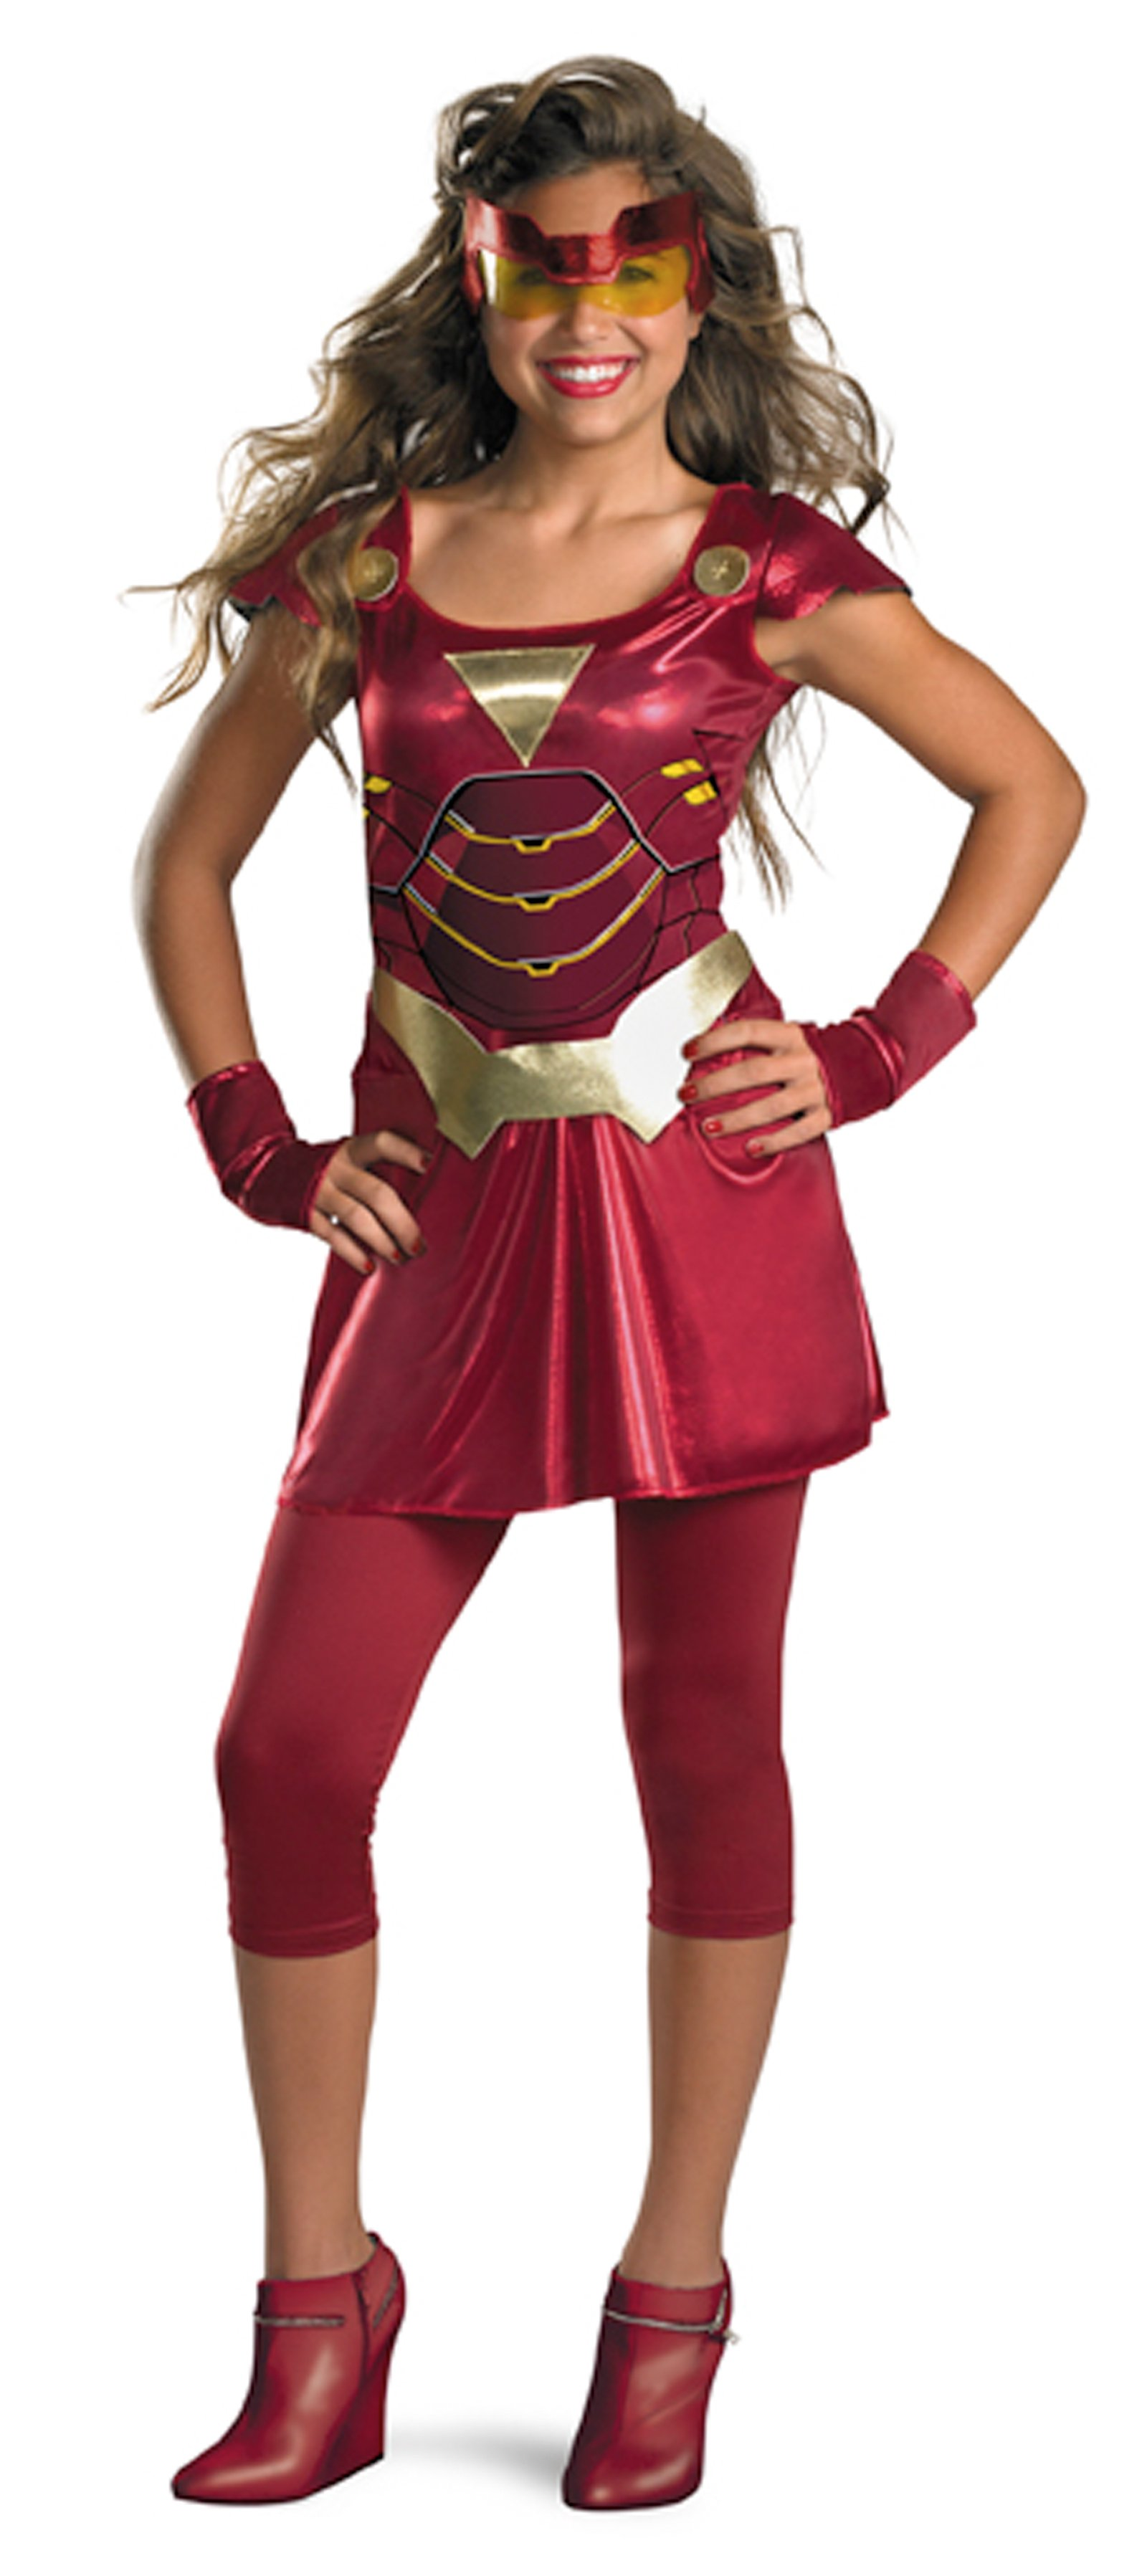 Iron Man 2 (2010) Movie - Iron Girl Child Costume